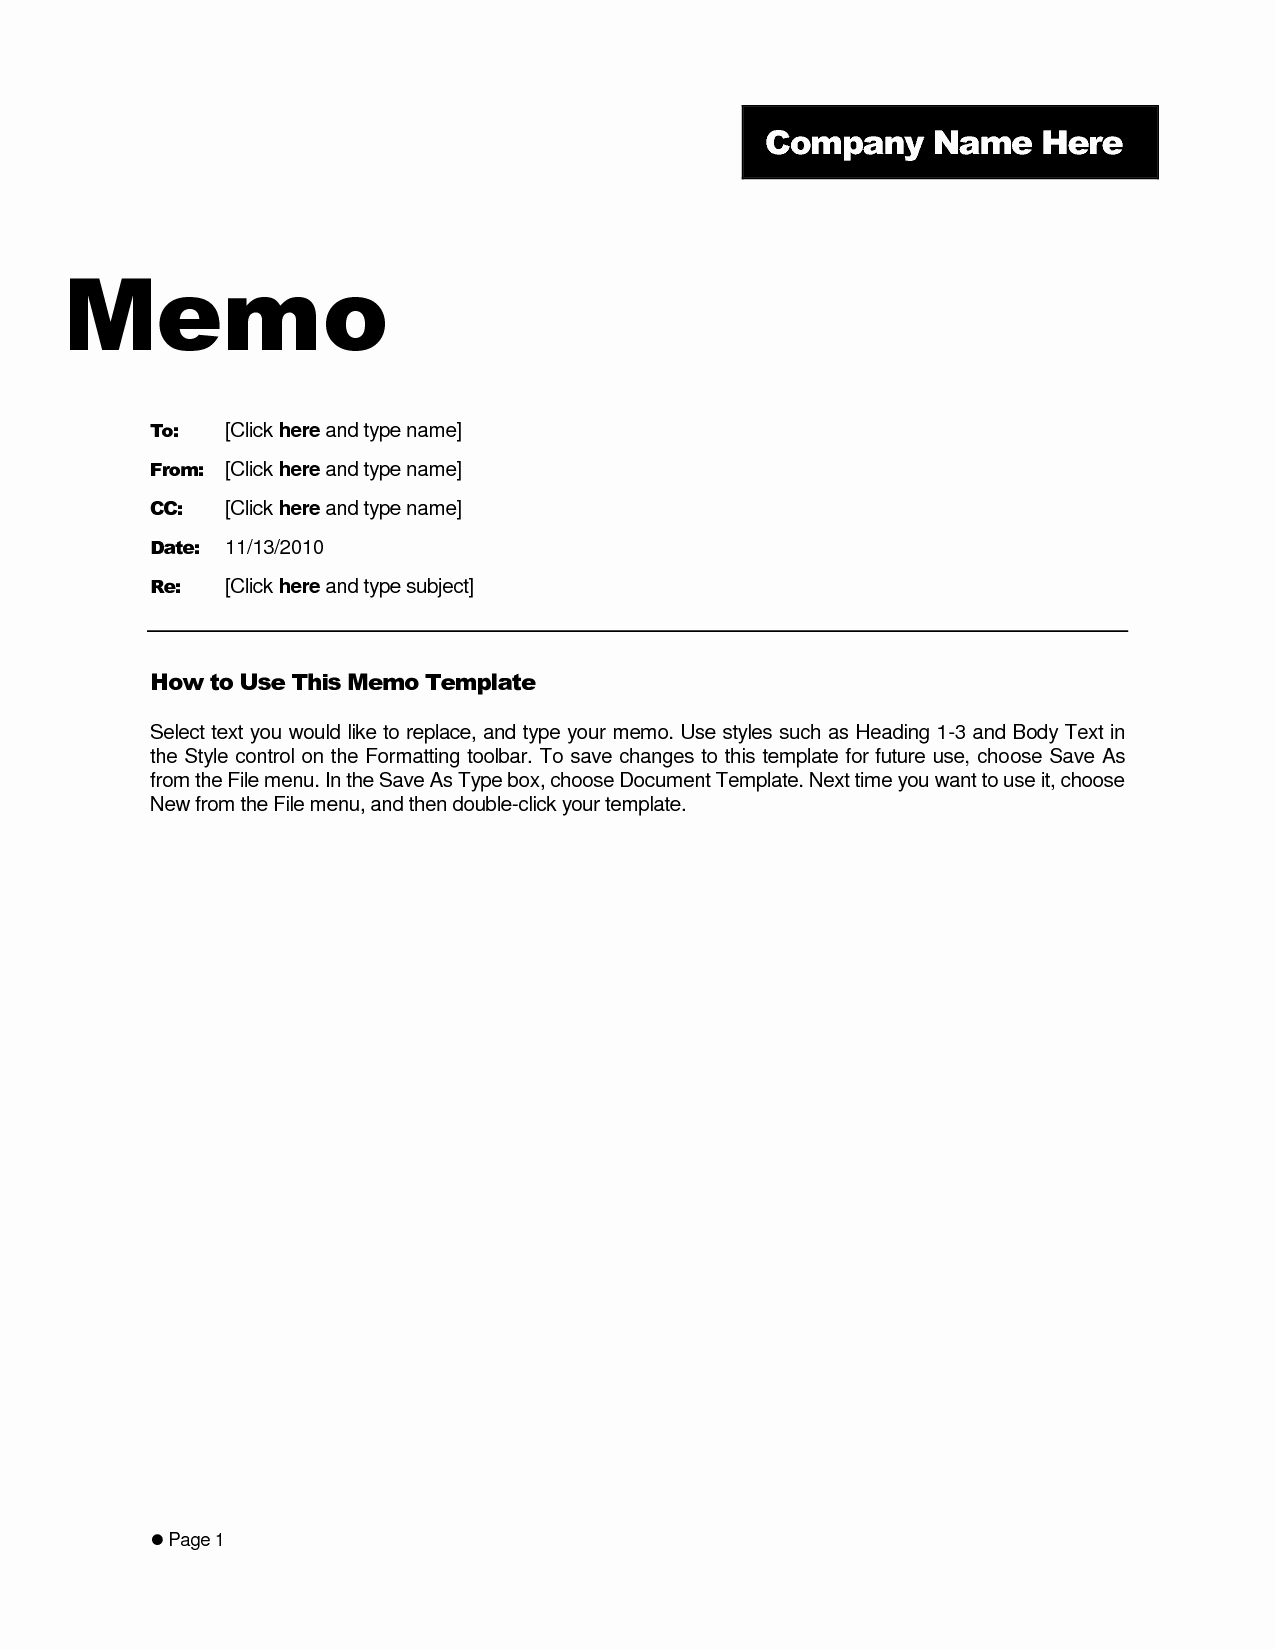 Memorandum Template Word 2010 Unique Best S Of Free Memo Templates Word Document